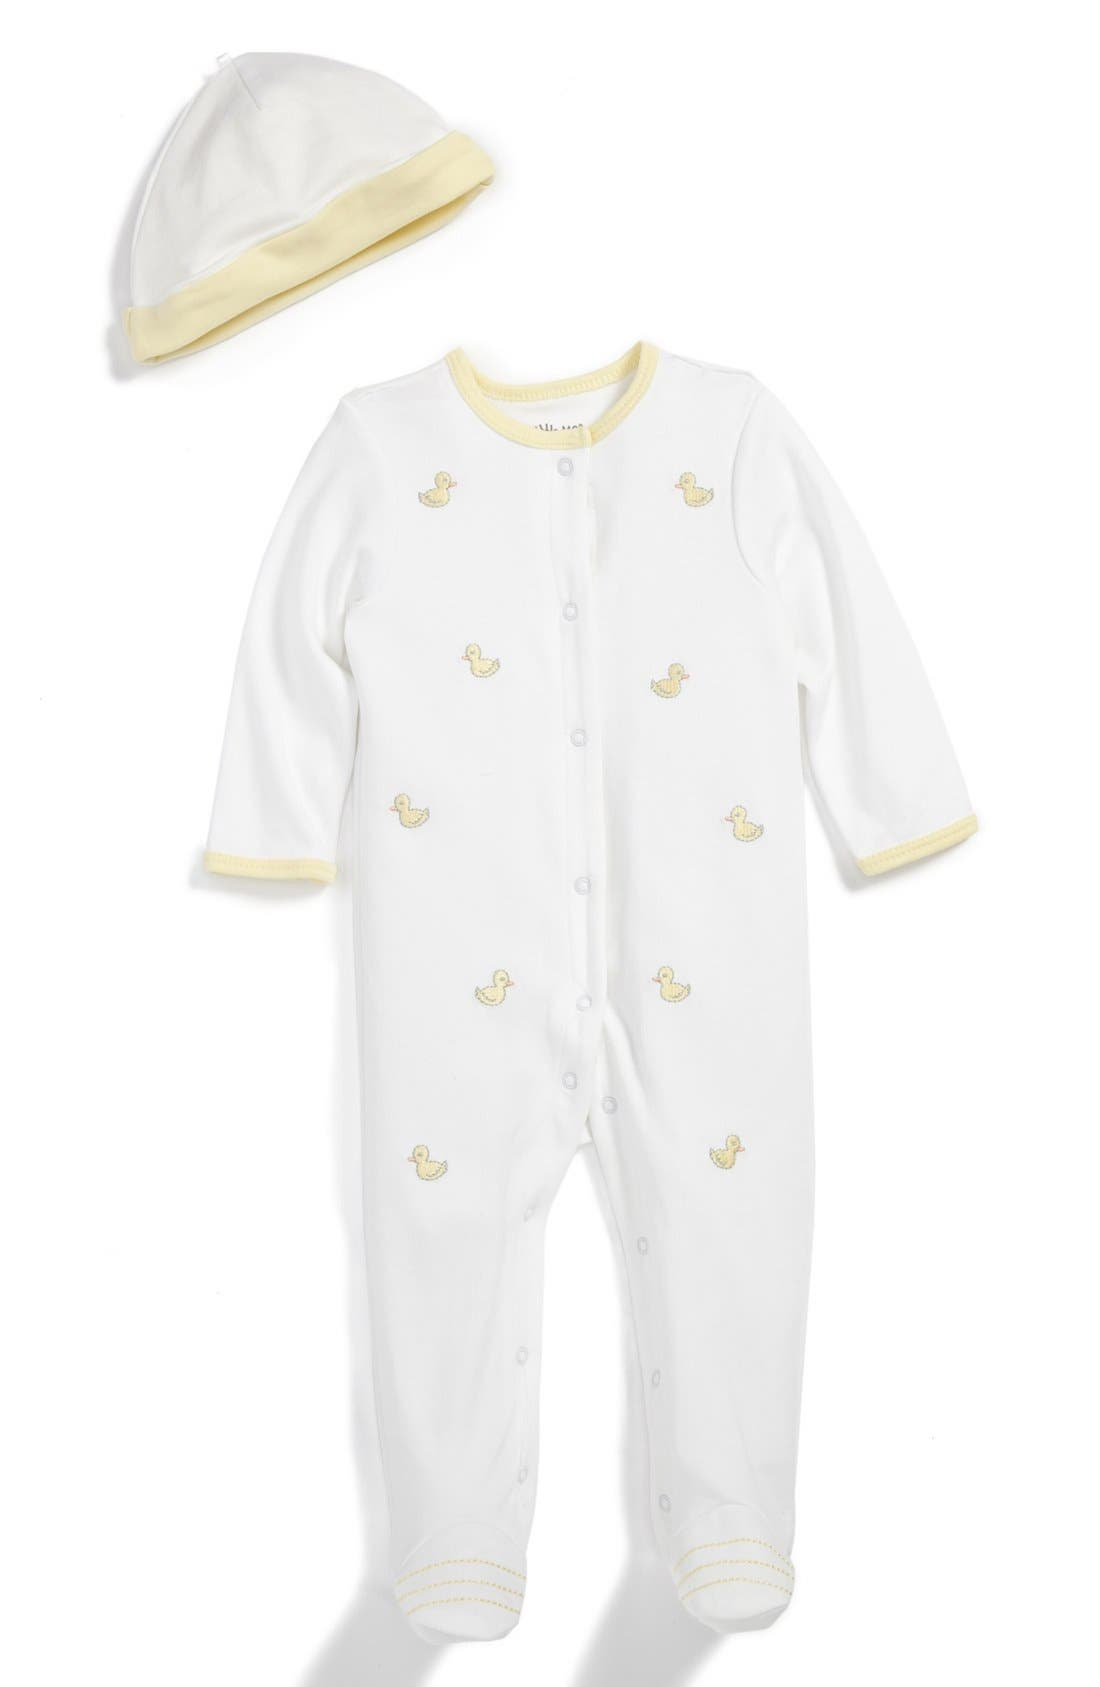 Main Image - Little Me 'Little Ducks' Embroidered Footie & Hat (Baby)